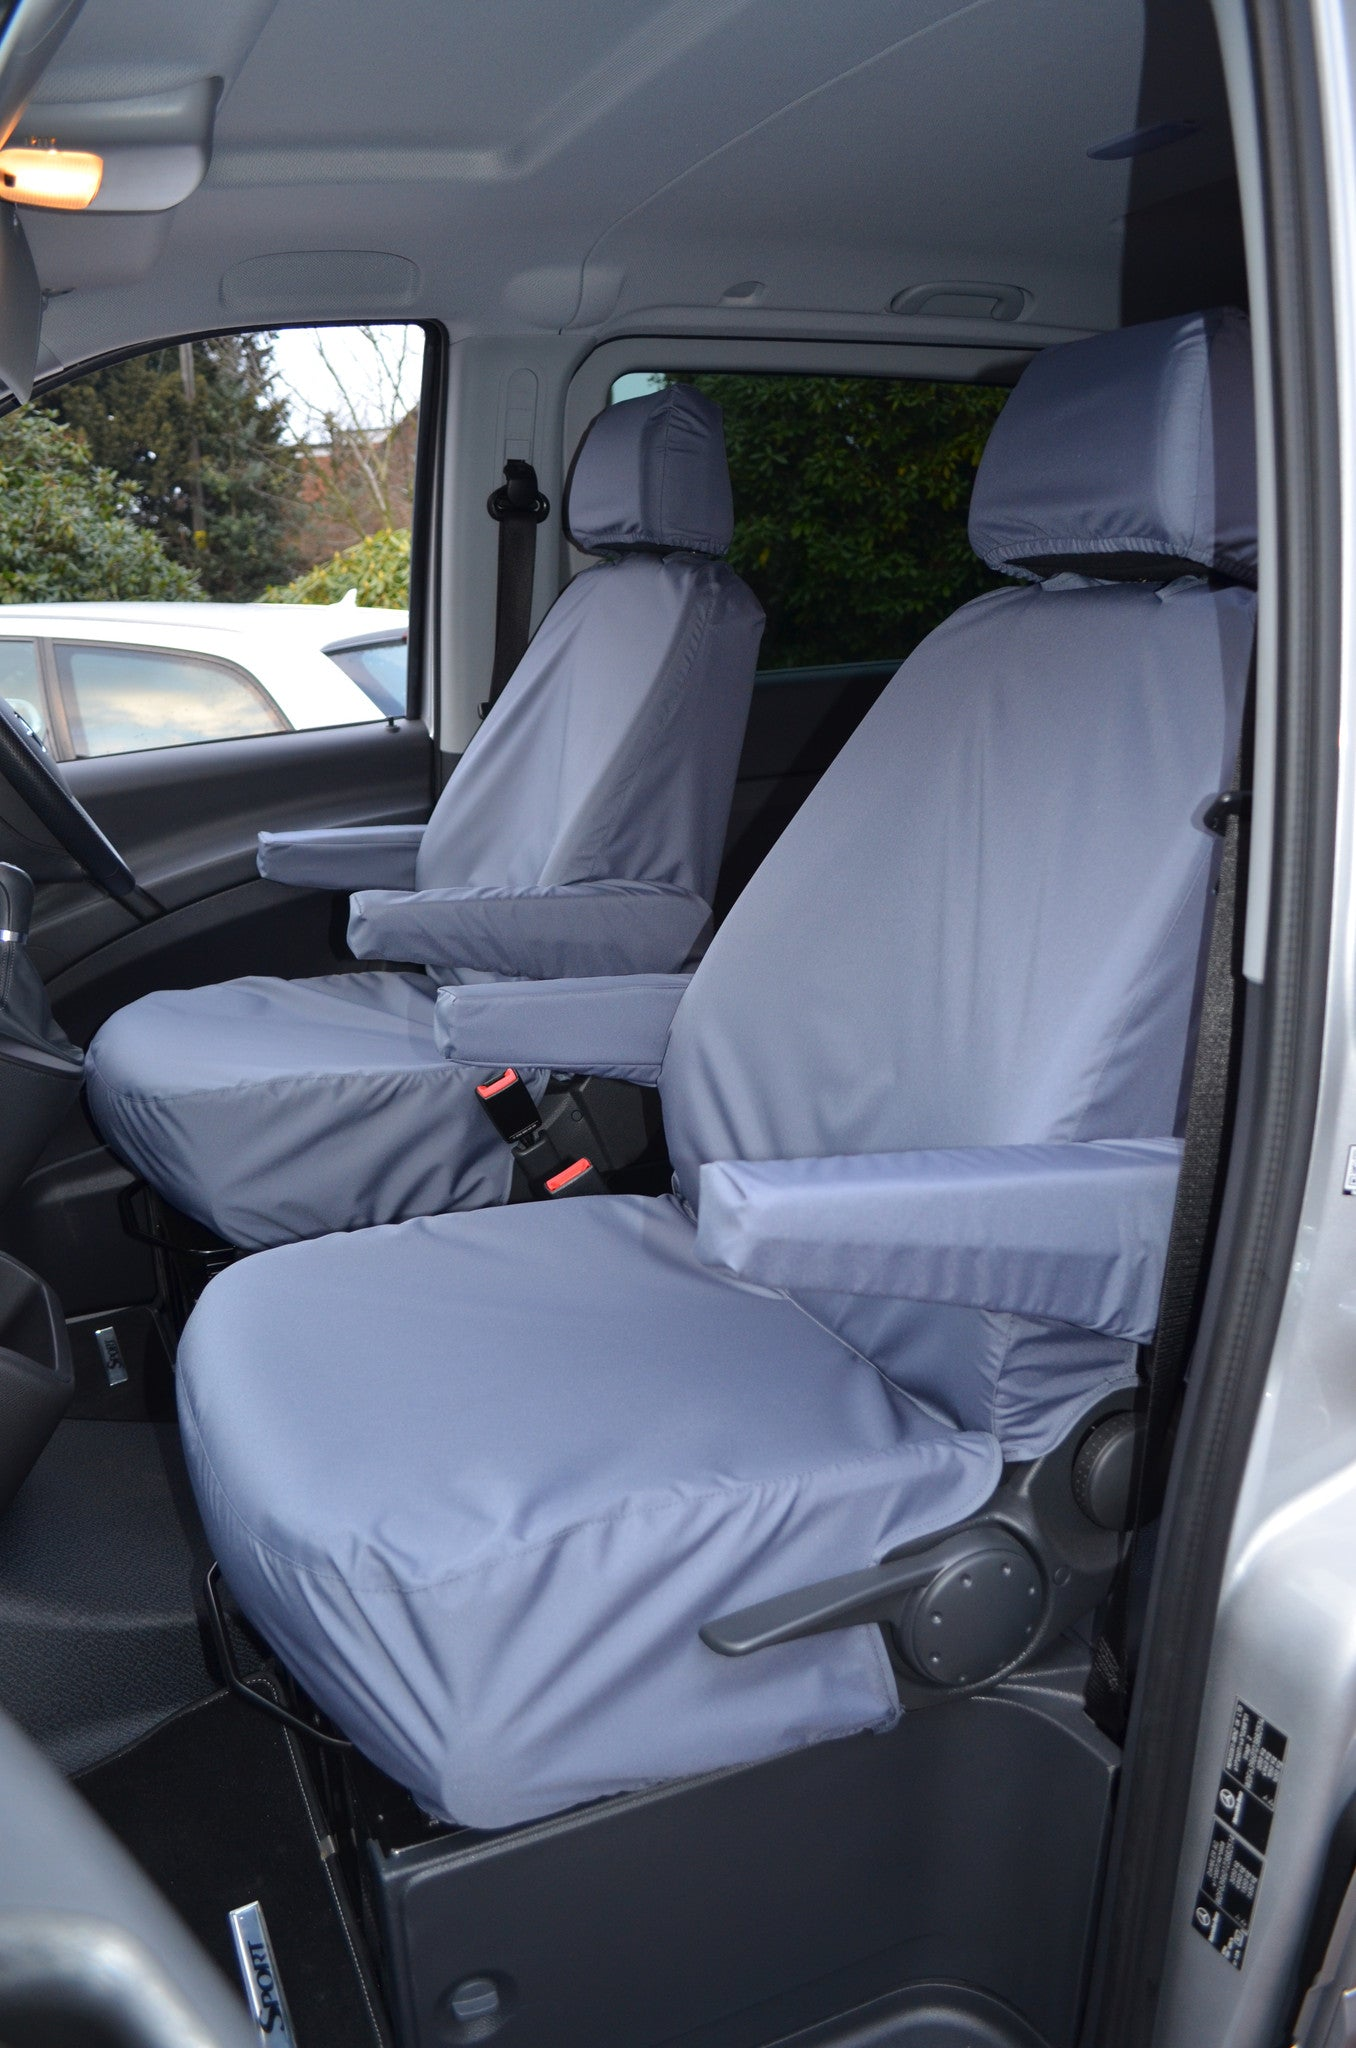 1 x Front - Single Heavy Duty Driver Captain Passenger Van Car Seat Cover Protector Waterproof For Mitsubishi L200 Single Cab BLACK